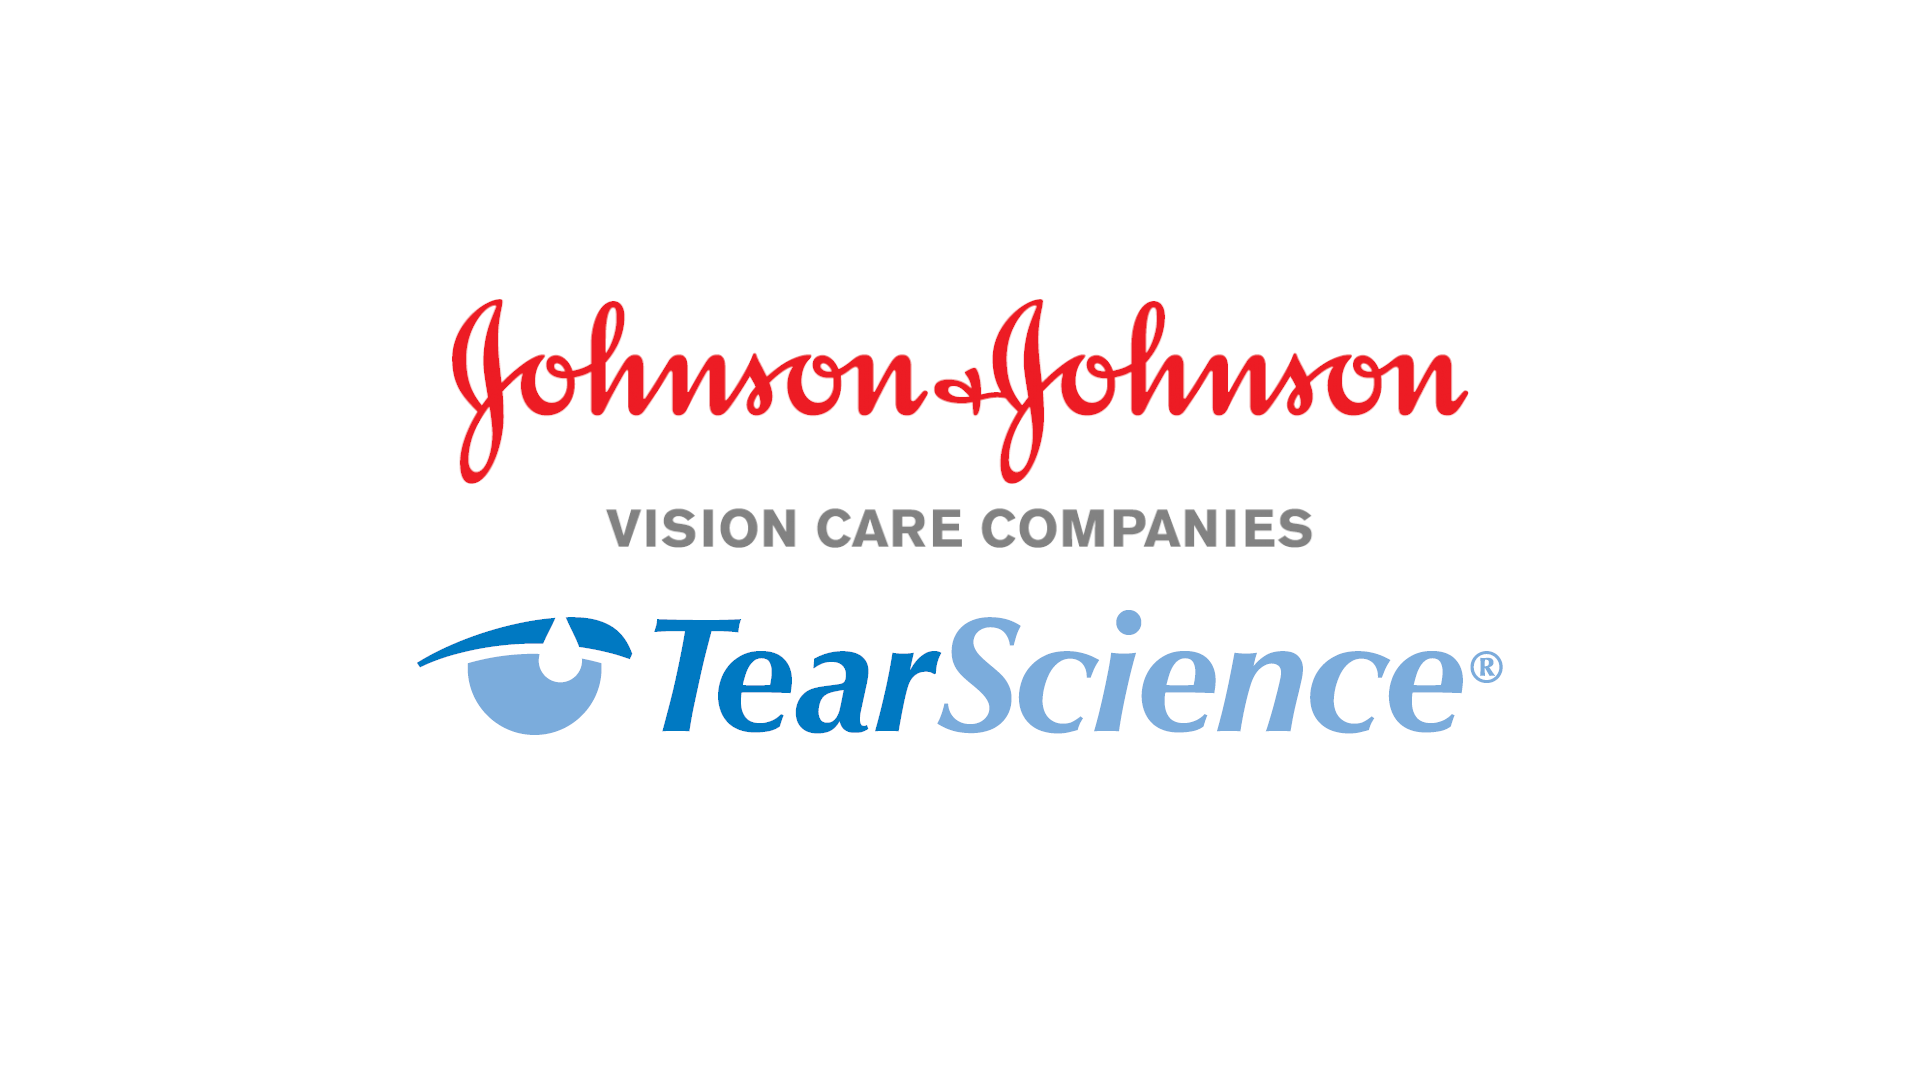 a company overview of johnson and johnson Johnson & johnson indonesia, pt company profile from hoover's – get an in-depth analysis of johnson & johnson indonesia, pt business, financials, industry focus, competitors and more.